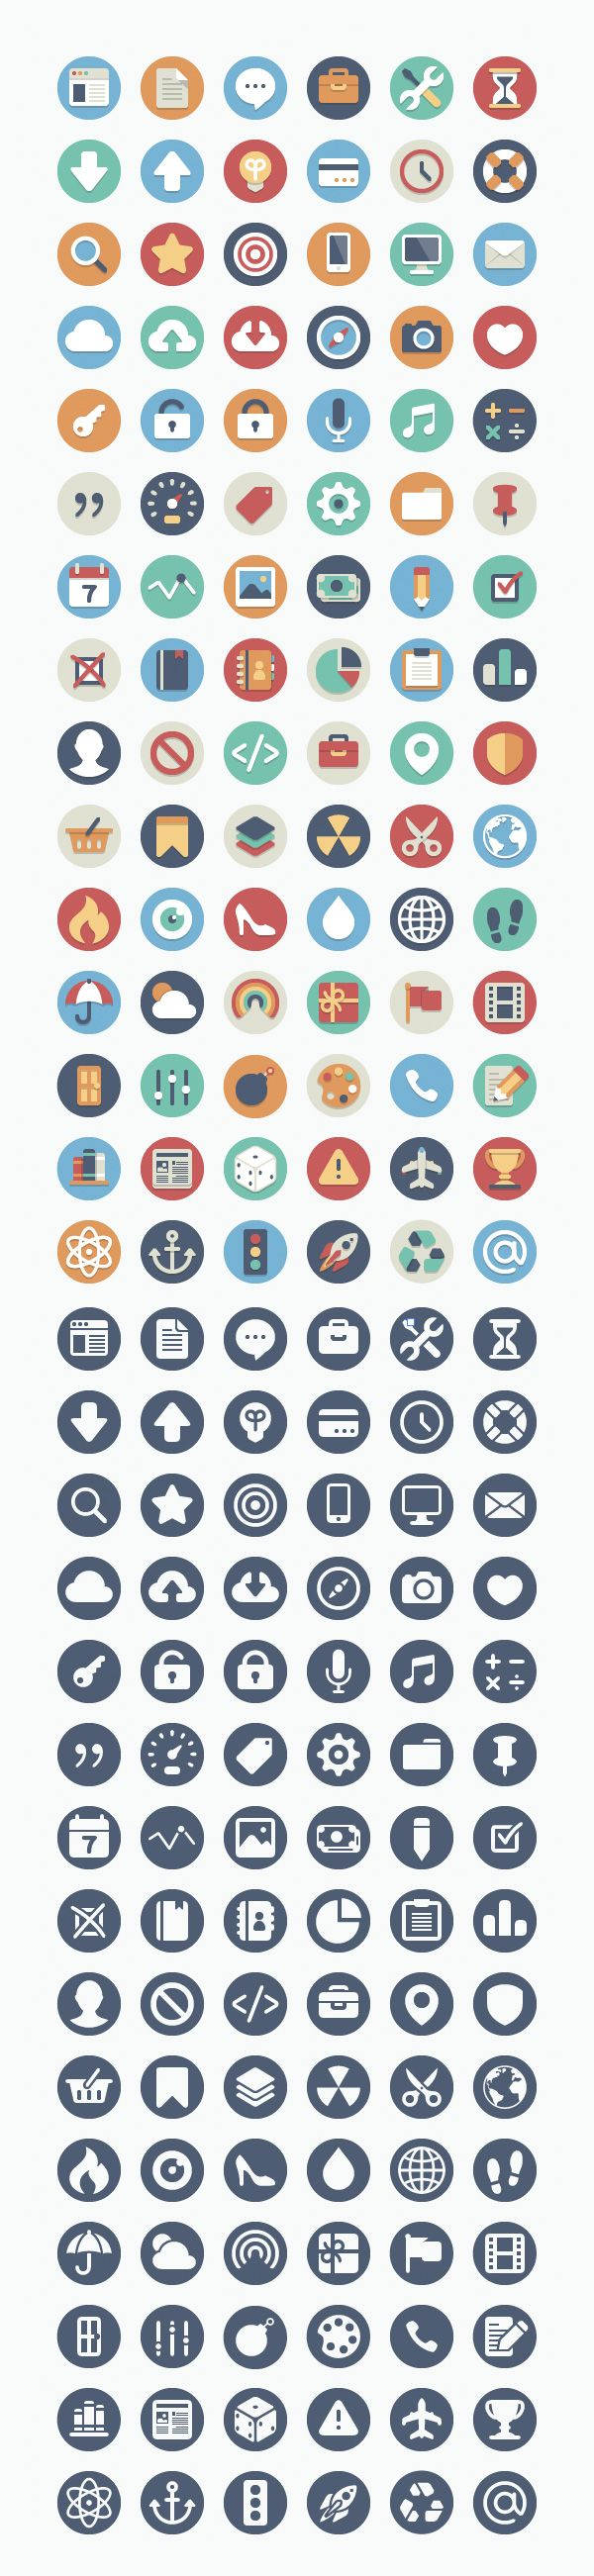 Hipster flat icons would want to print these off and stick them on